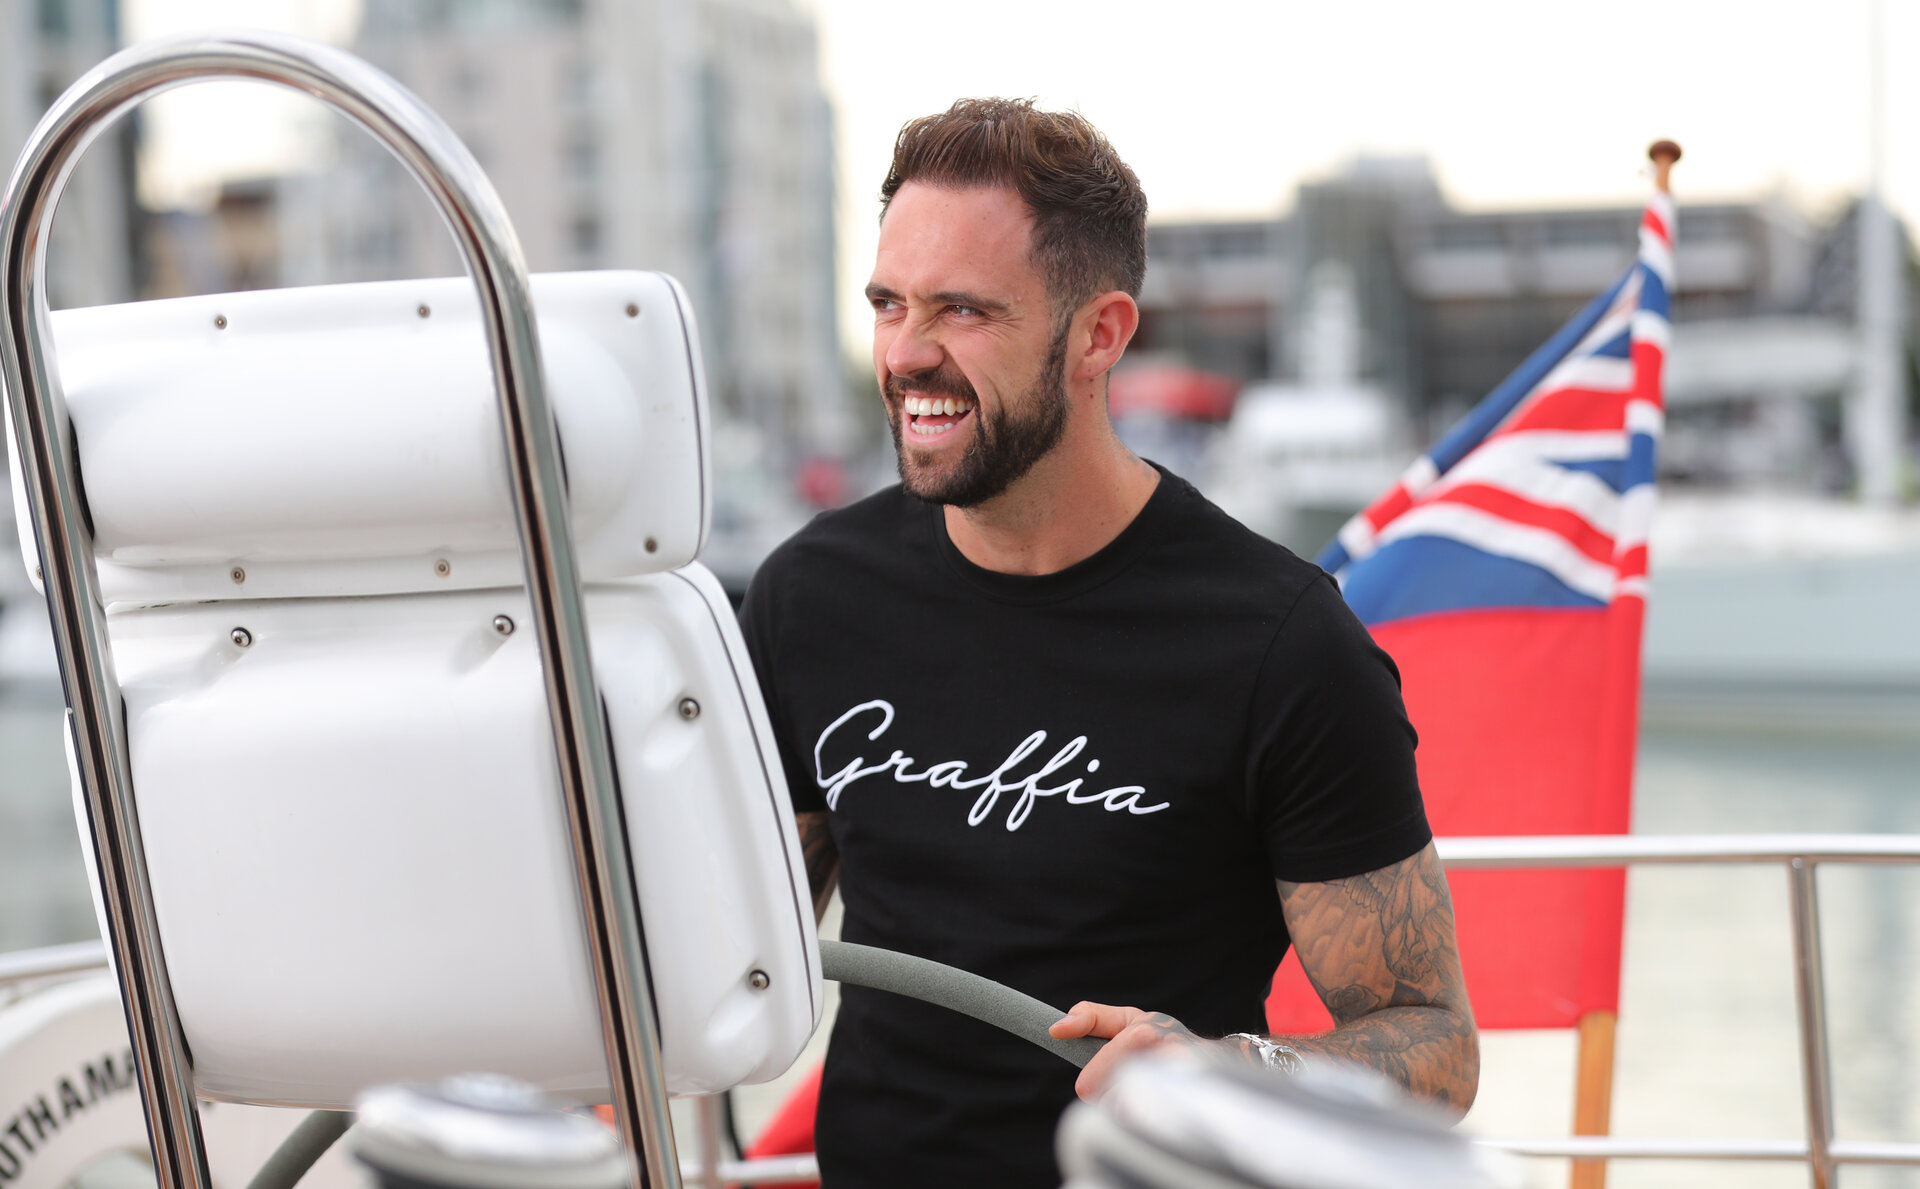 SOUTHAMPTON, ENGLAND - AUGUST 30: Danny Ings during a photoshoot for Southampton FC, on August 30, 2018 in Southampton, England. (Photo by Matt Watson/Southampton FC via Getty Images)